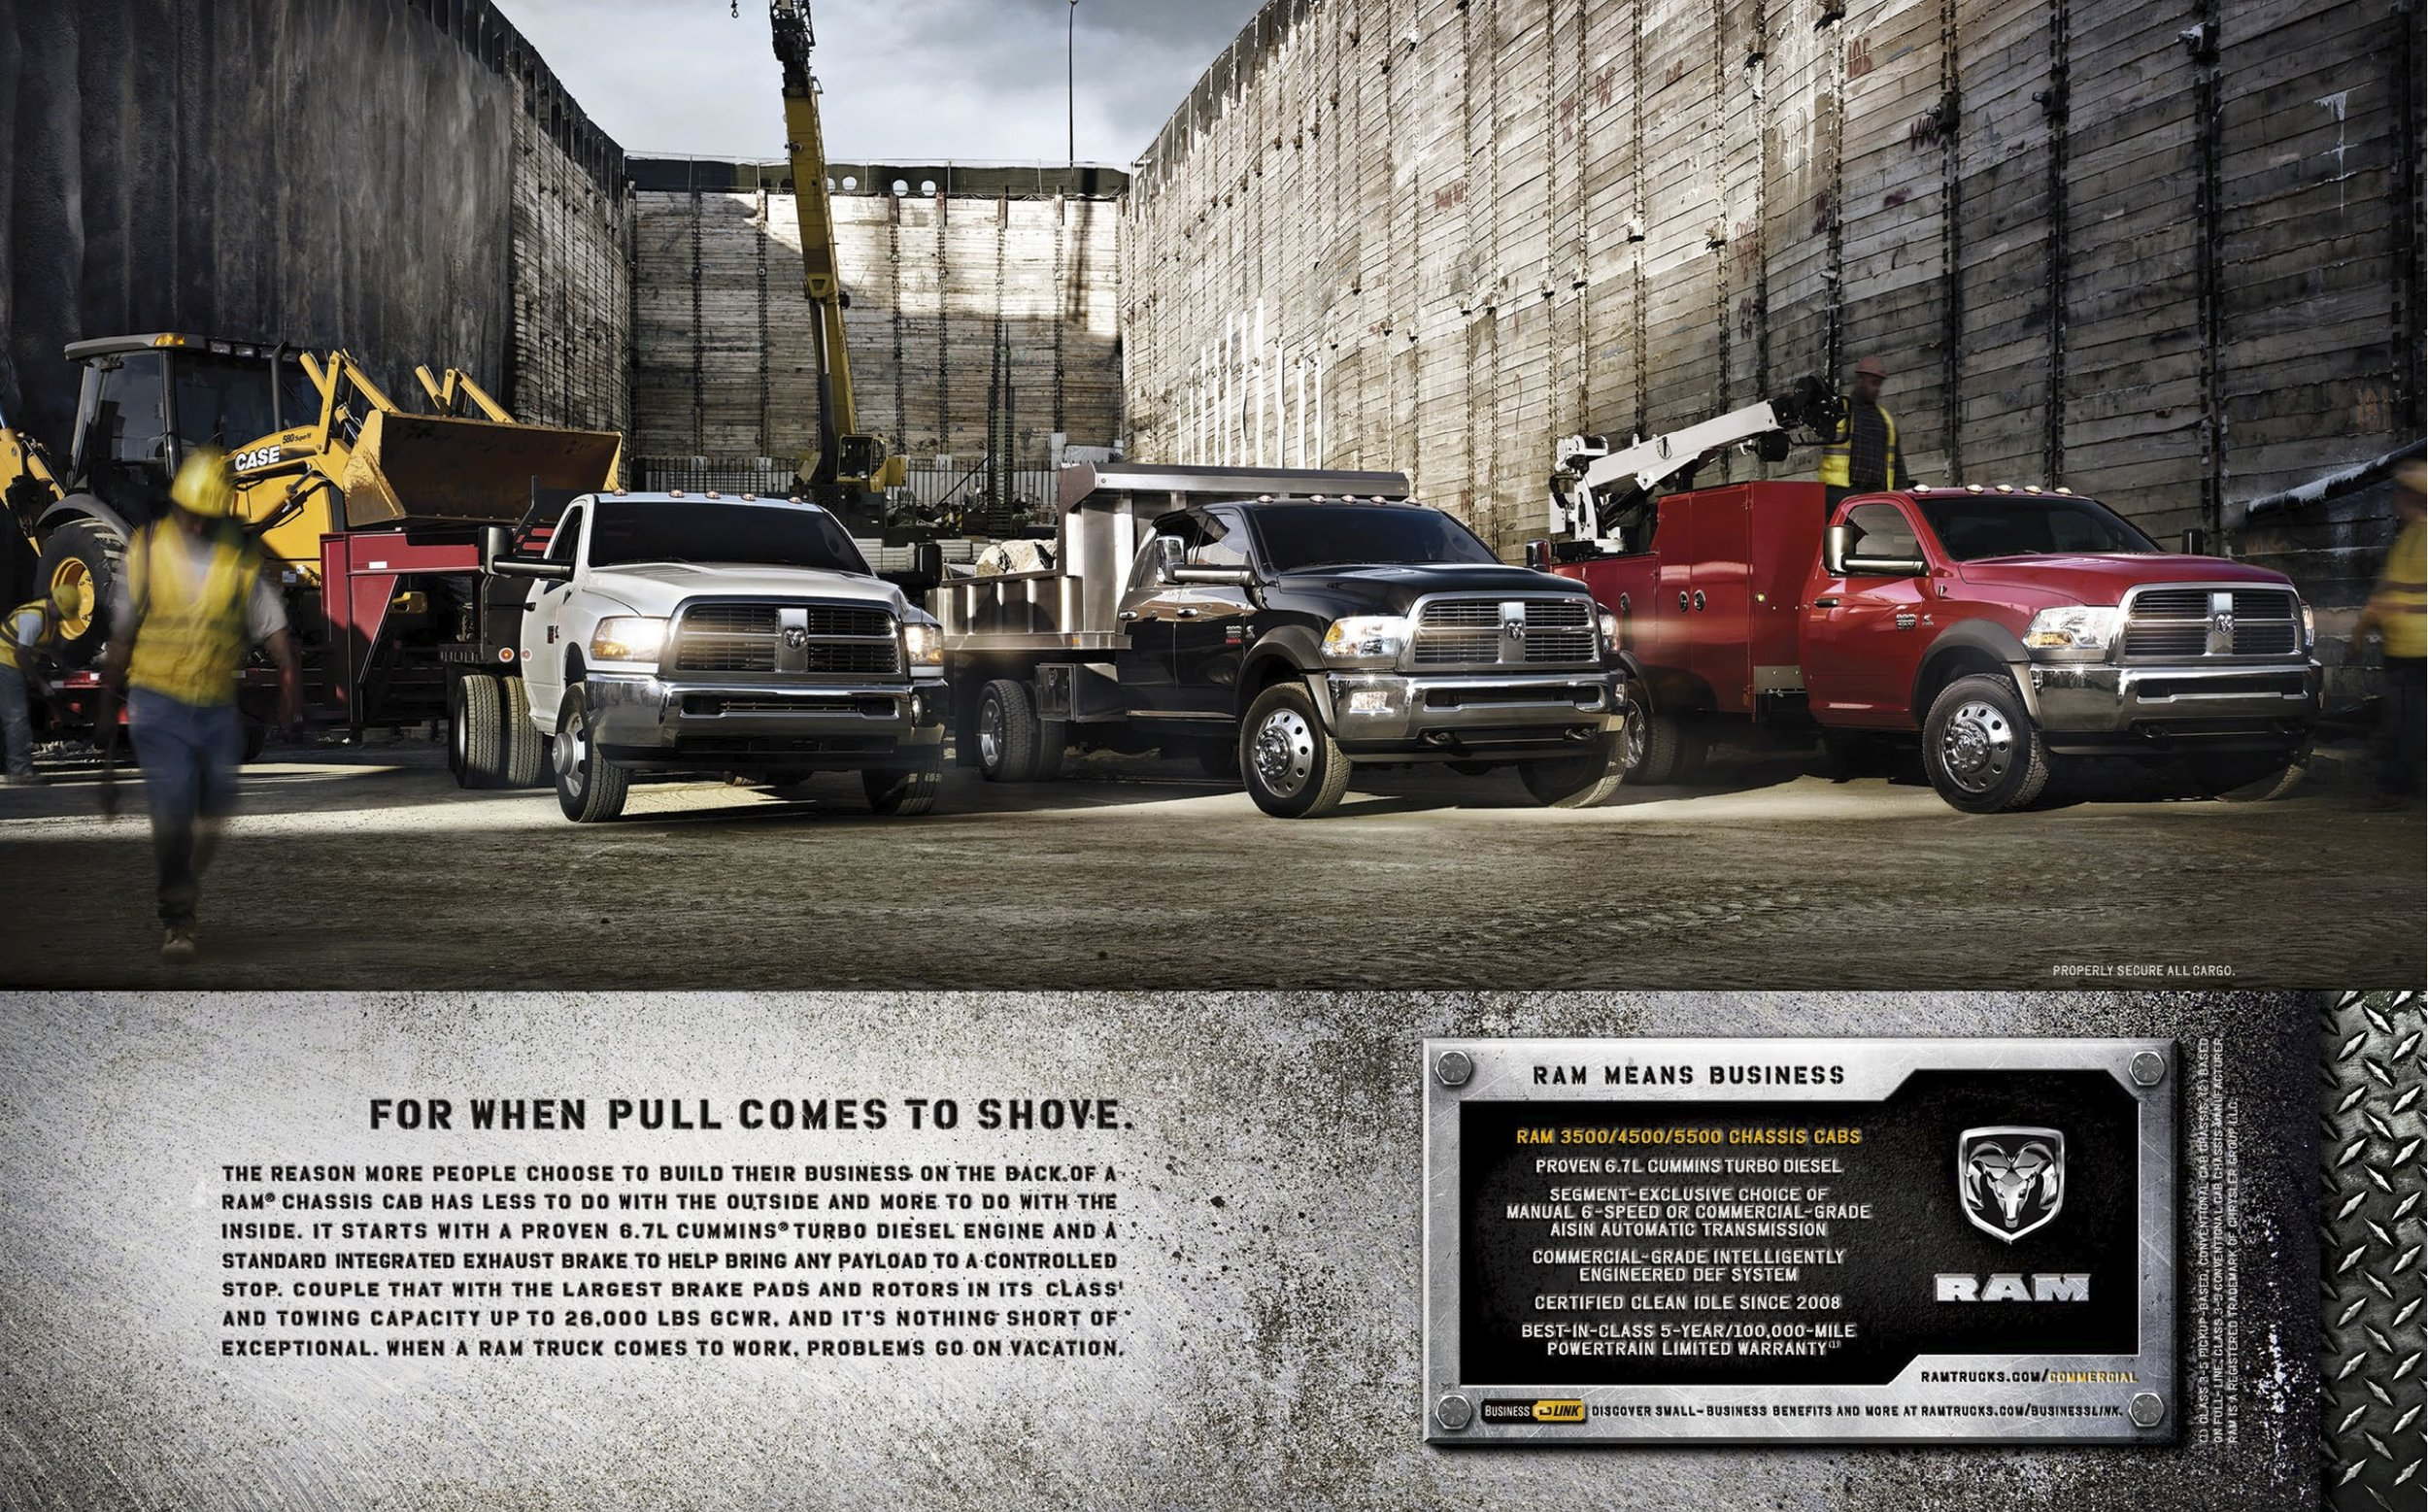 Chassis Cab Spreads.jpg